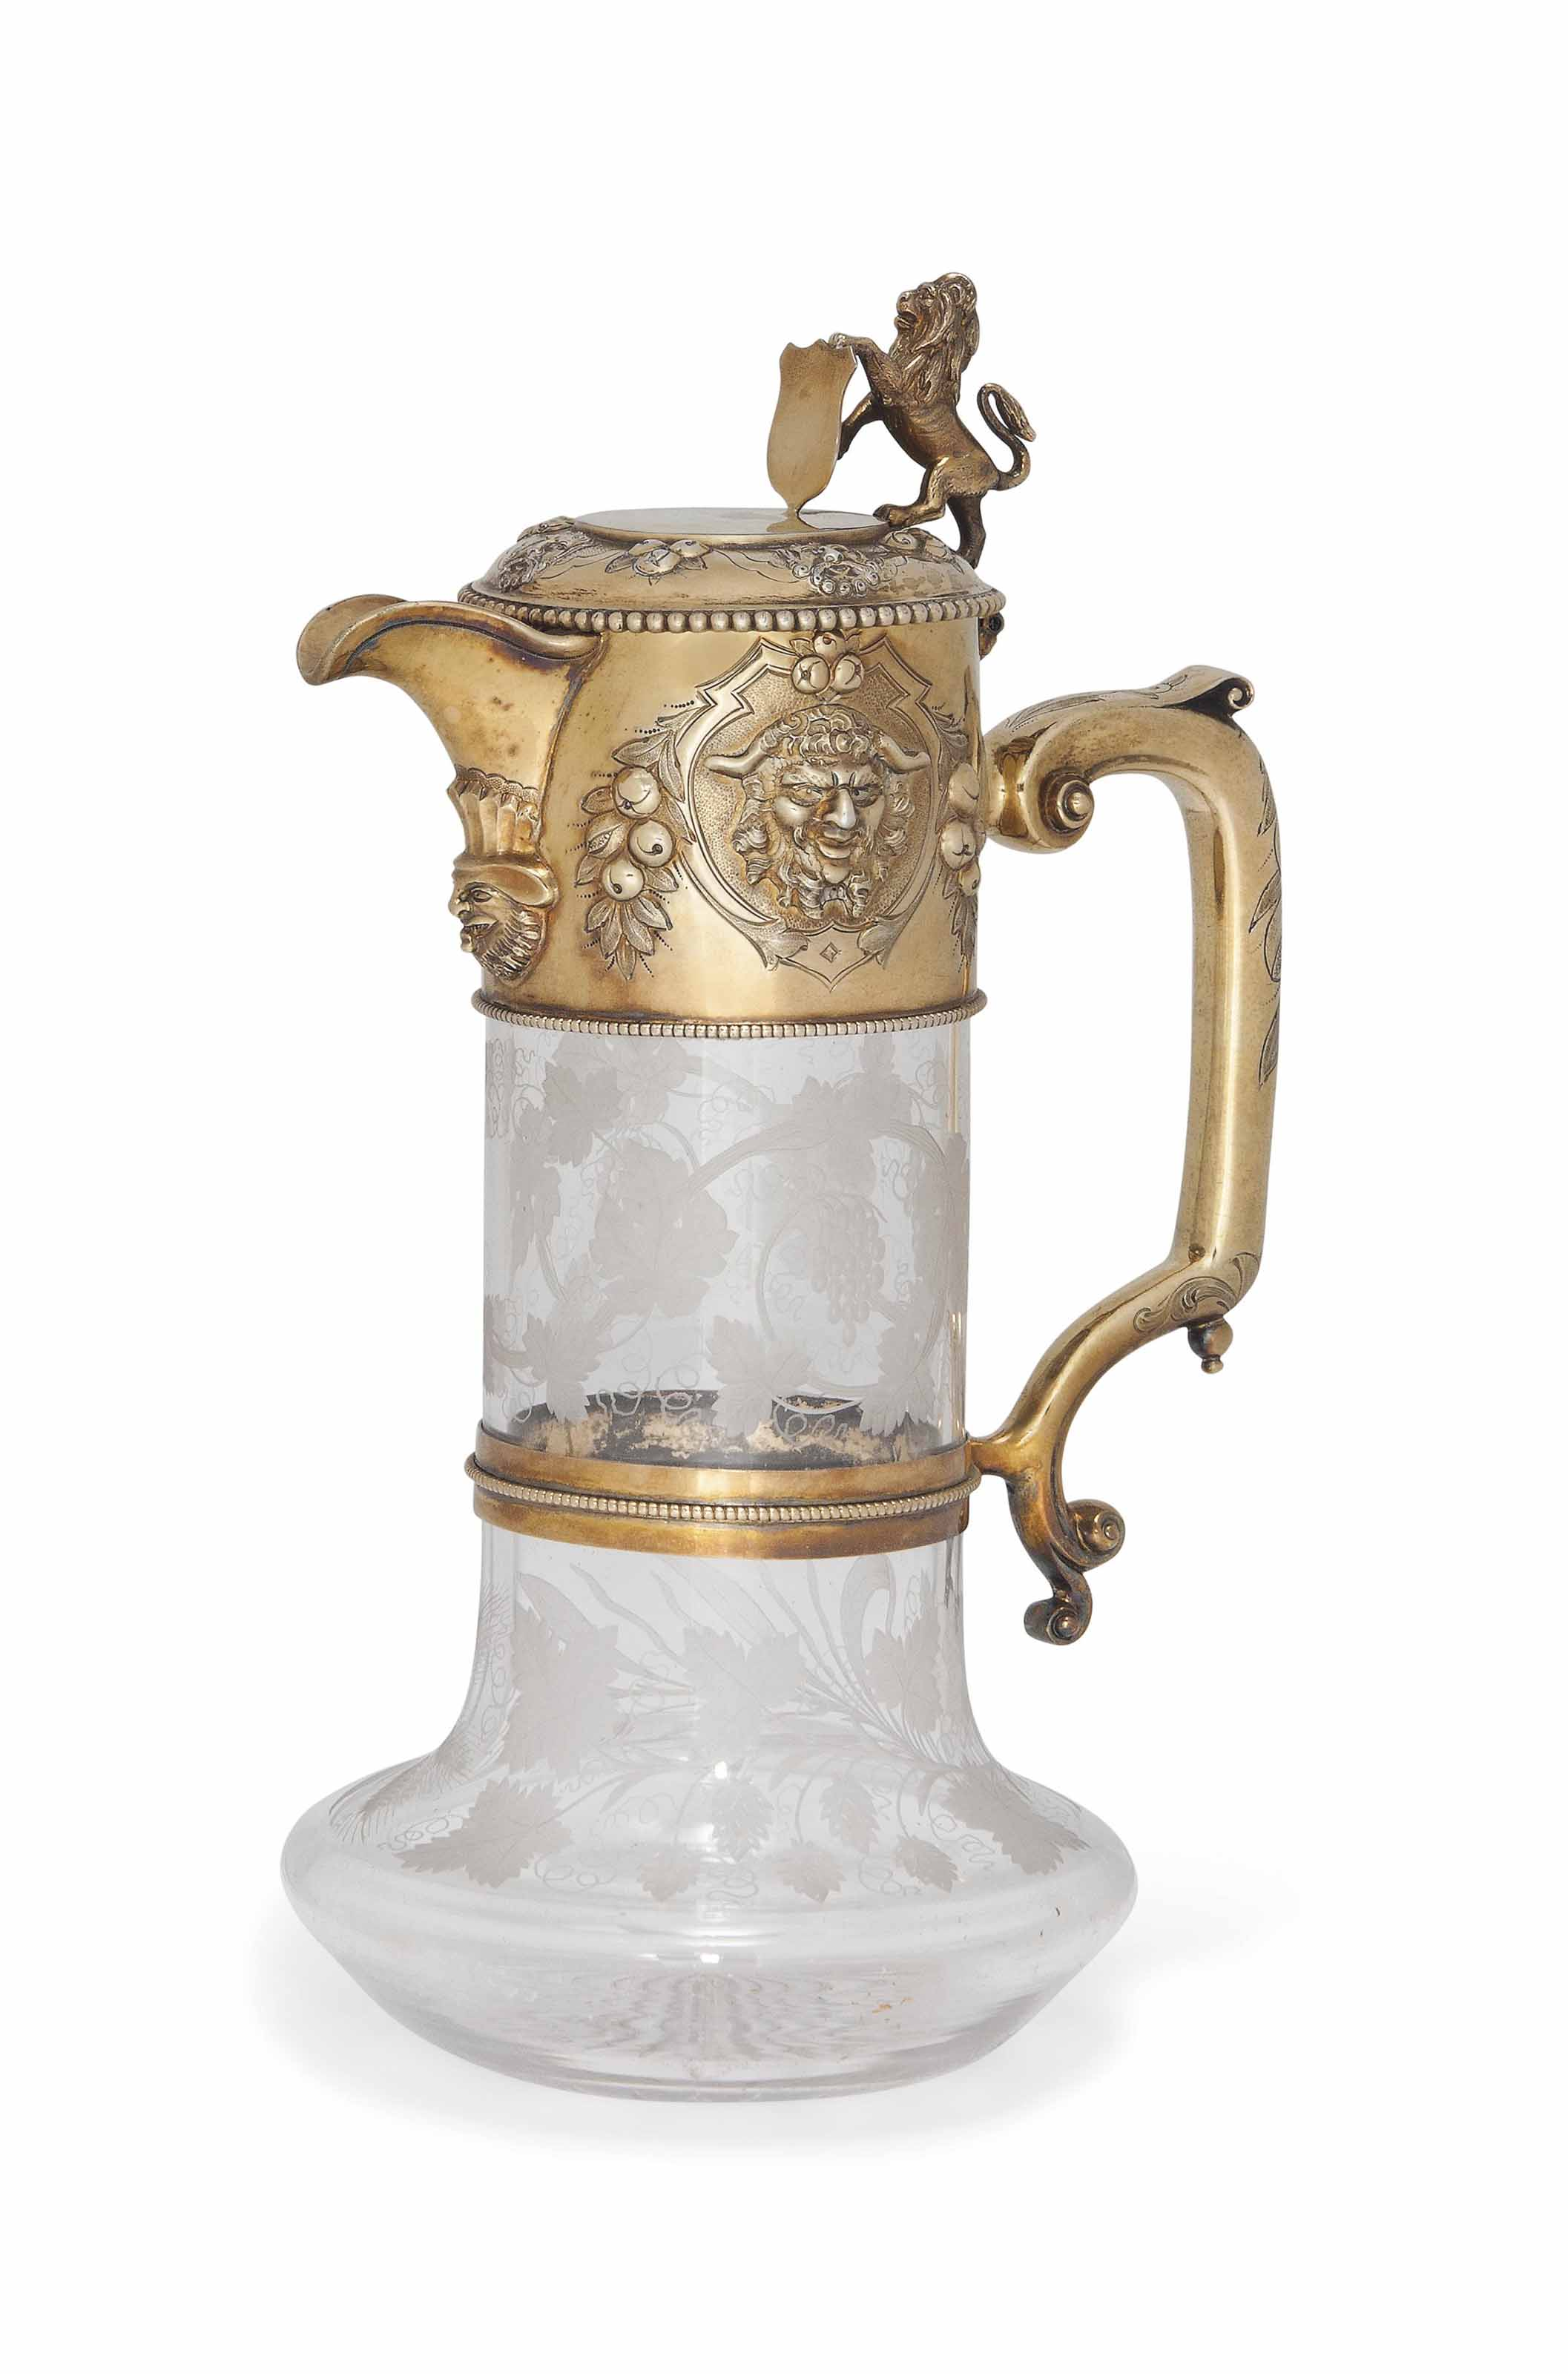 A VICTORIAN SILVER-GILT MOUNTED GLASS CLARET JUG